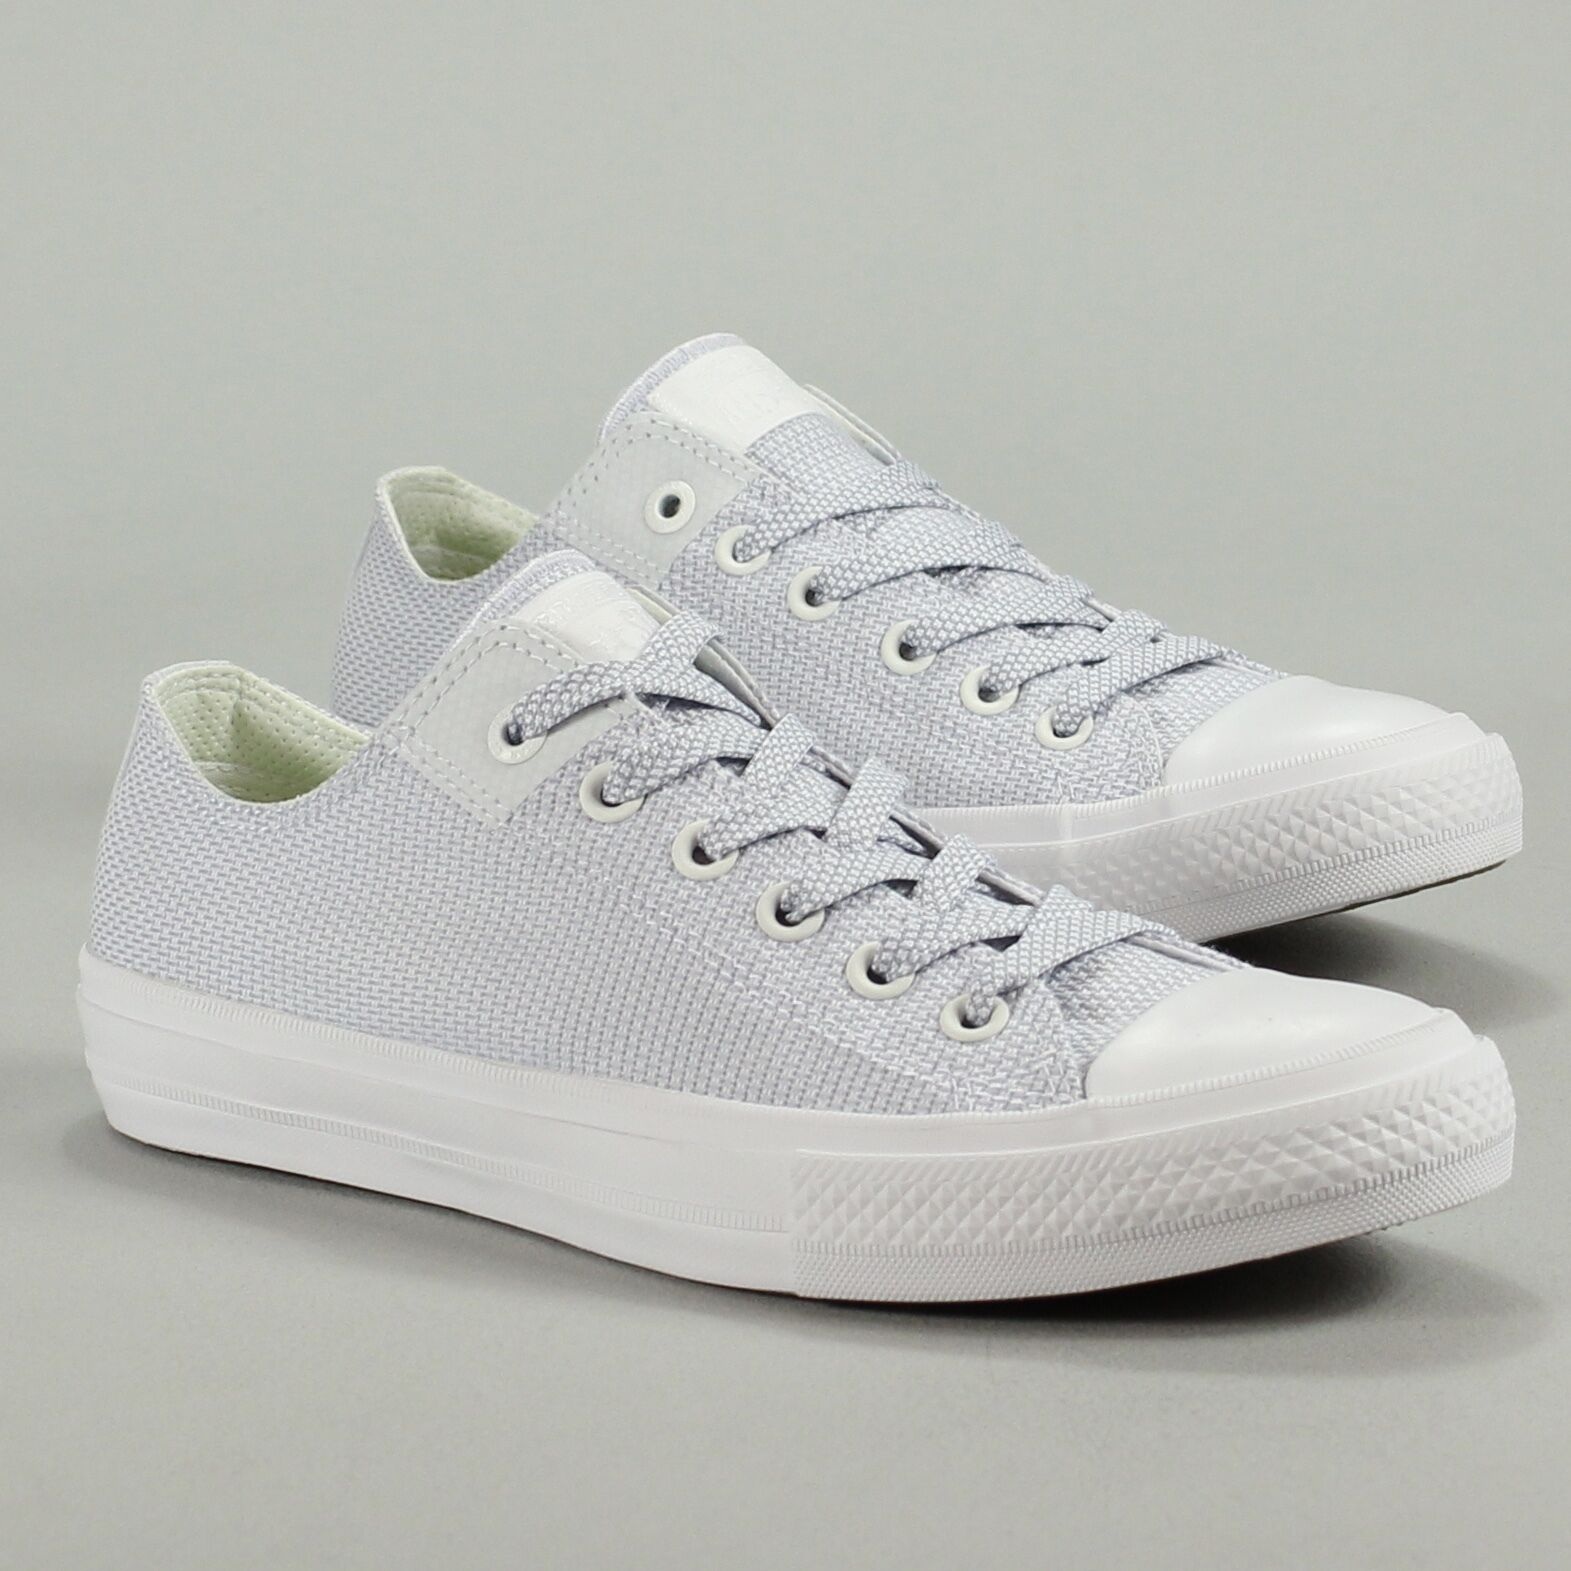 Converse All Star Ox II Trainers UK New in box Größe UK Trainers Größe 6,7,8,9,10 bc165c